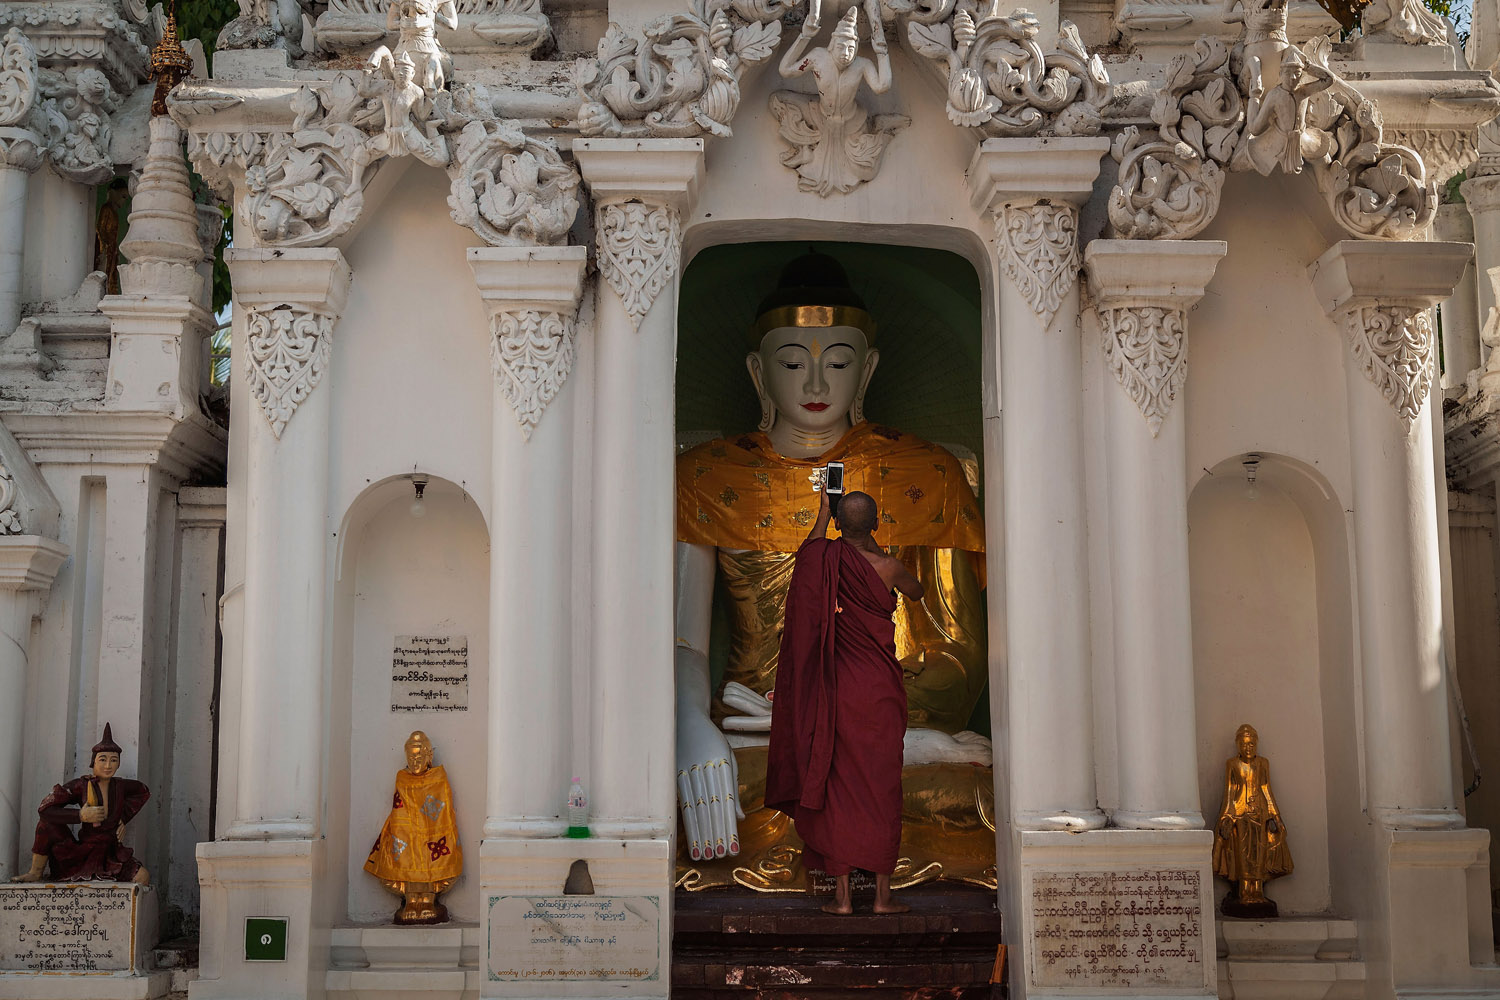 Mar. 15, 2014.  A Burmese monk takes a photo with his cell phone during the Shwedagon Pagoda festival in Yangon, Burma. The festival is celebrated by thousands of devout Buddhists in the country.